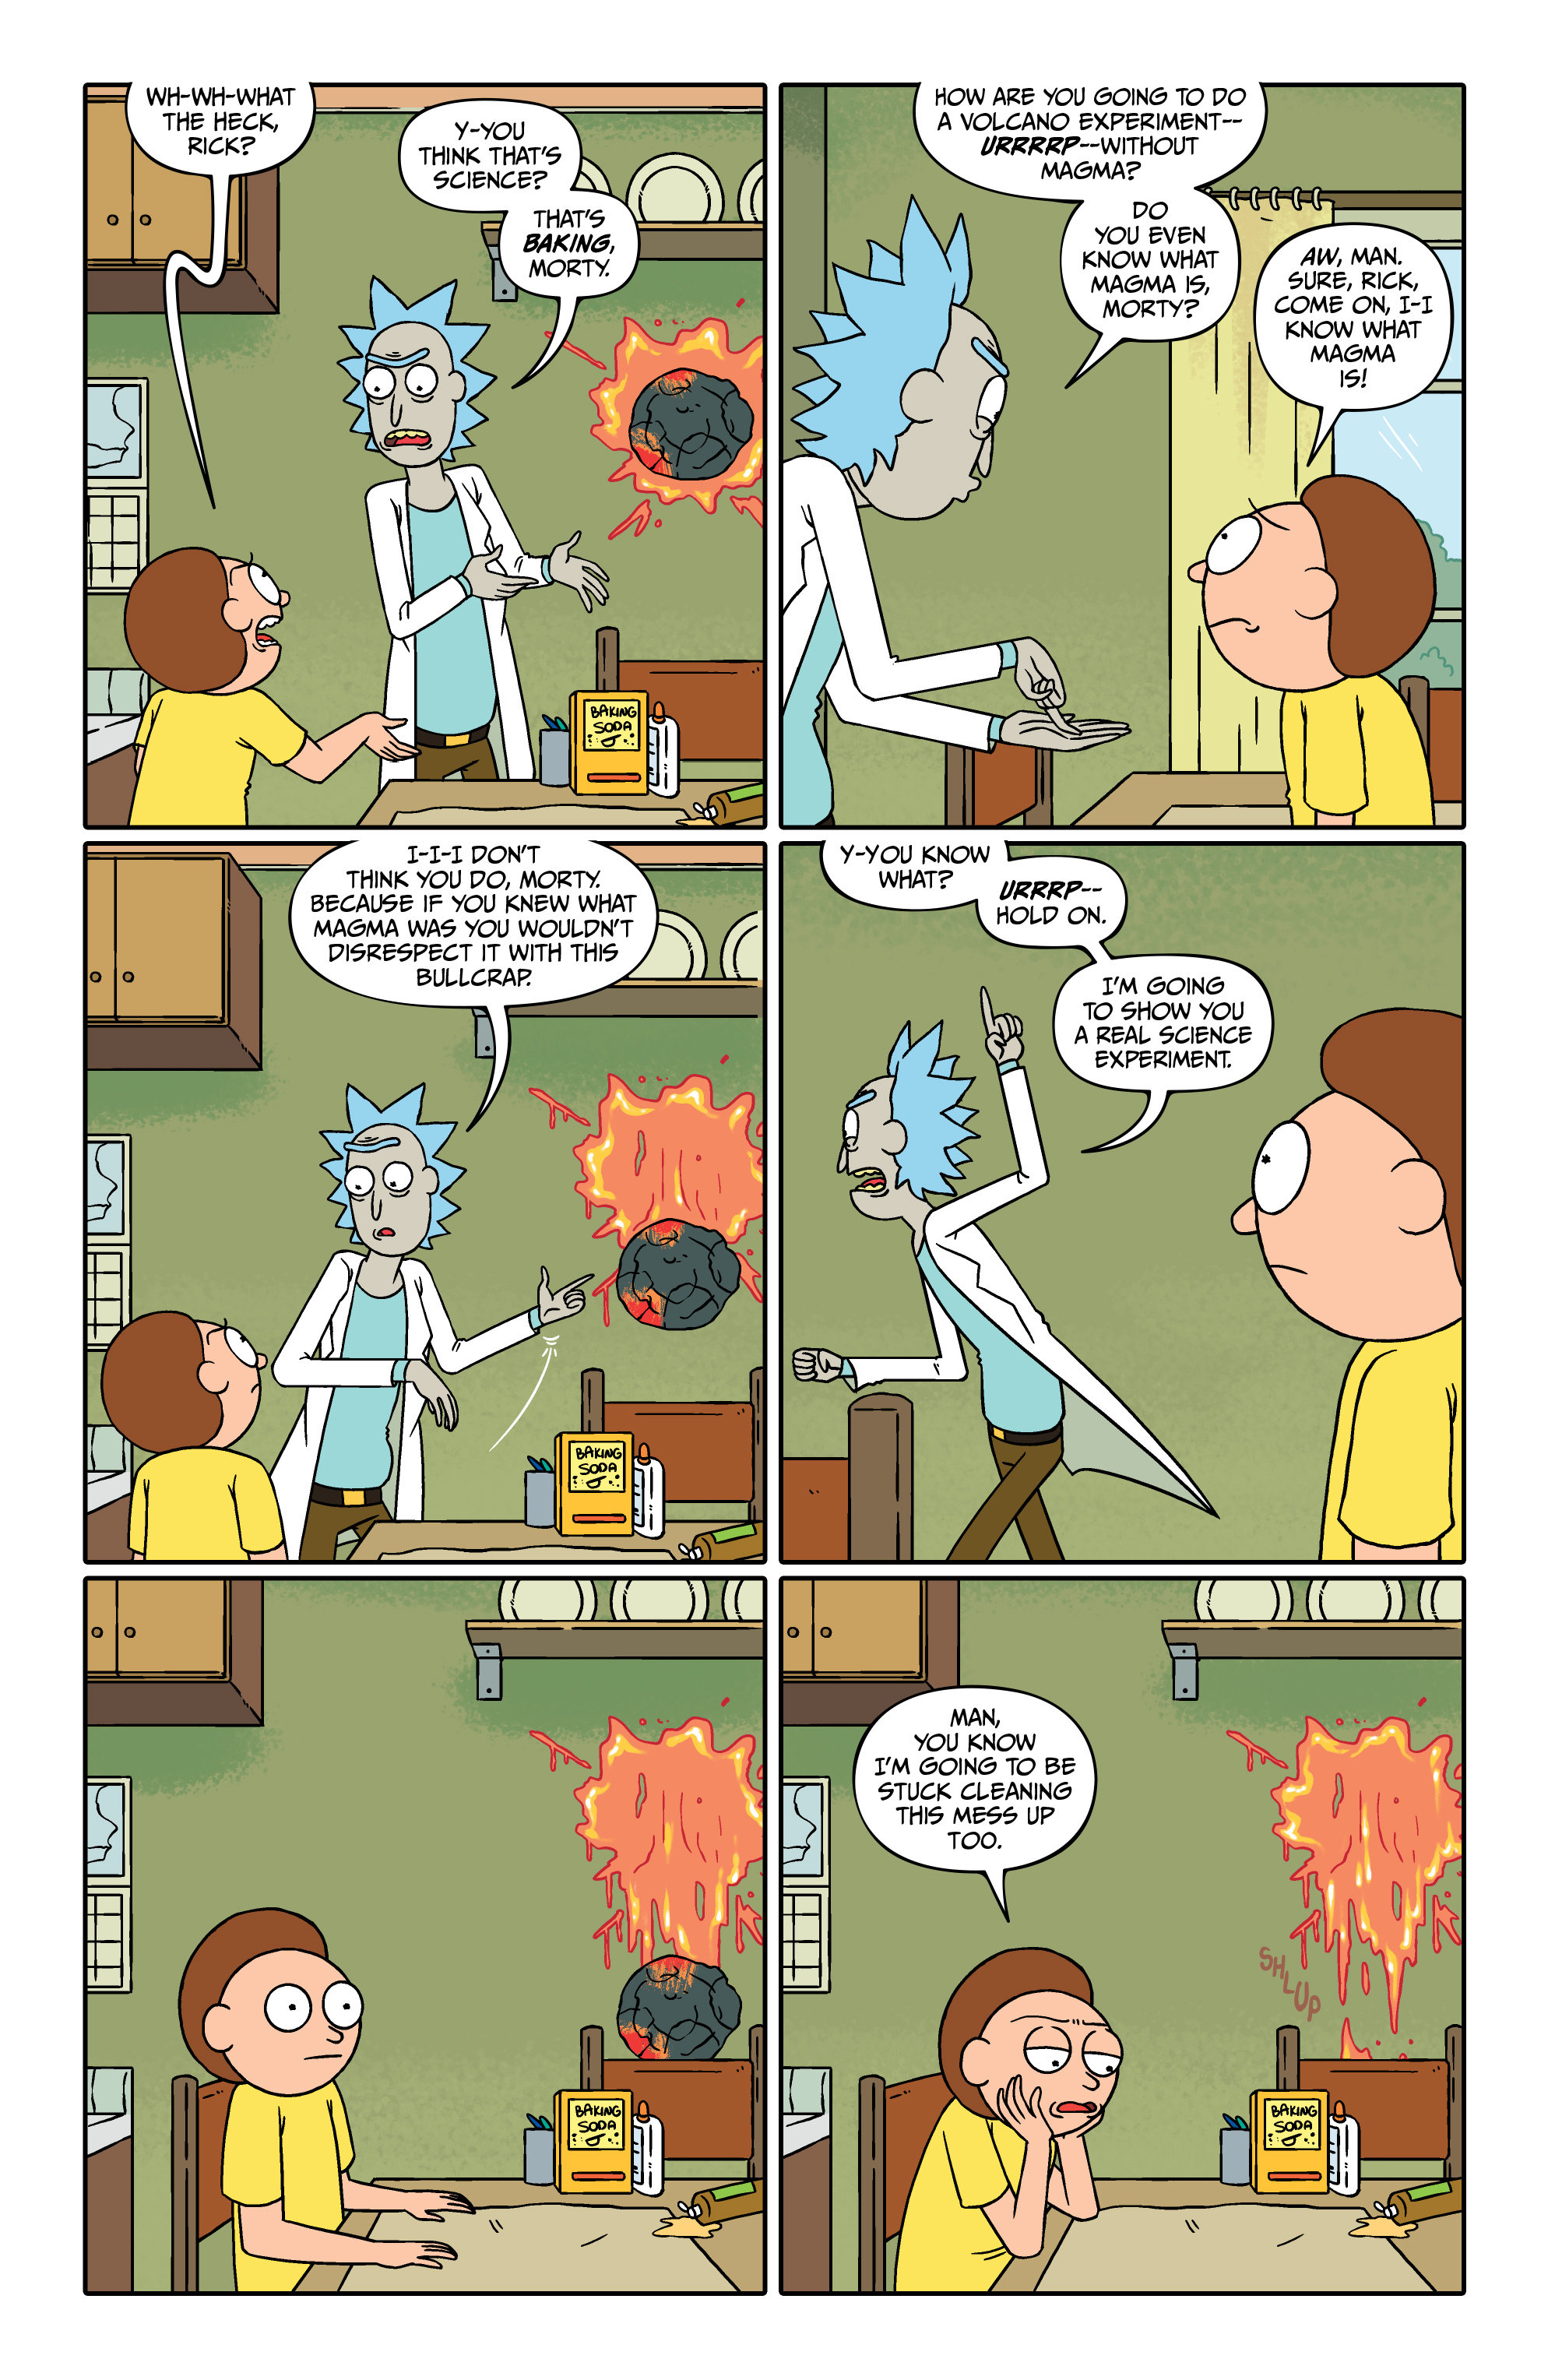 Read online Rick and Morty comic -  Issue #26 - 7